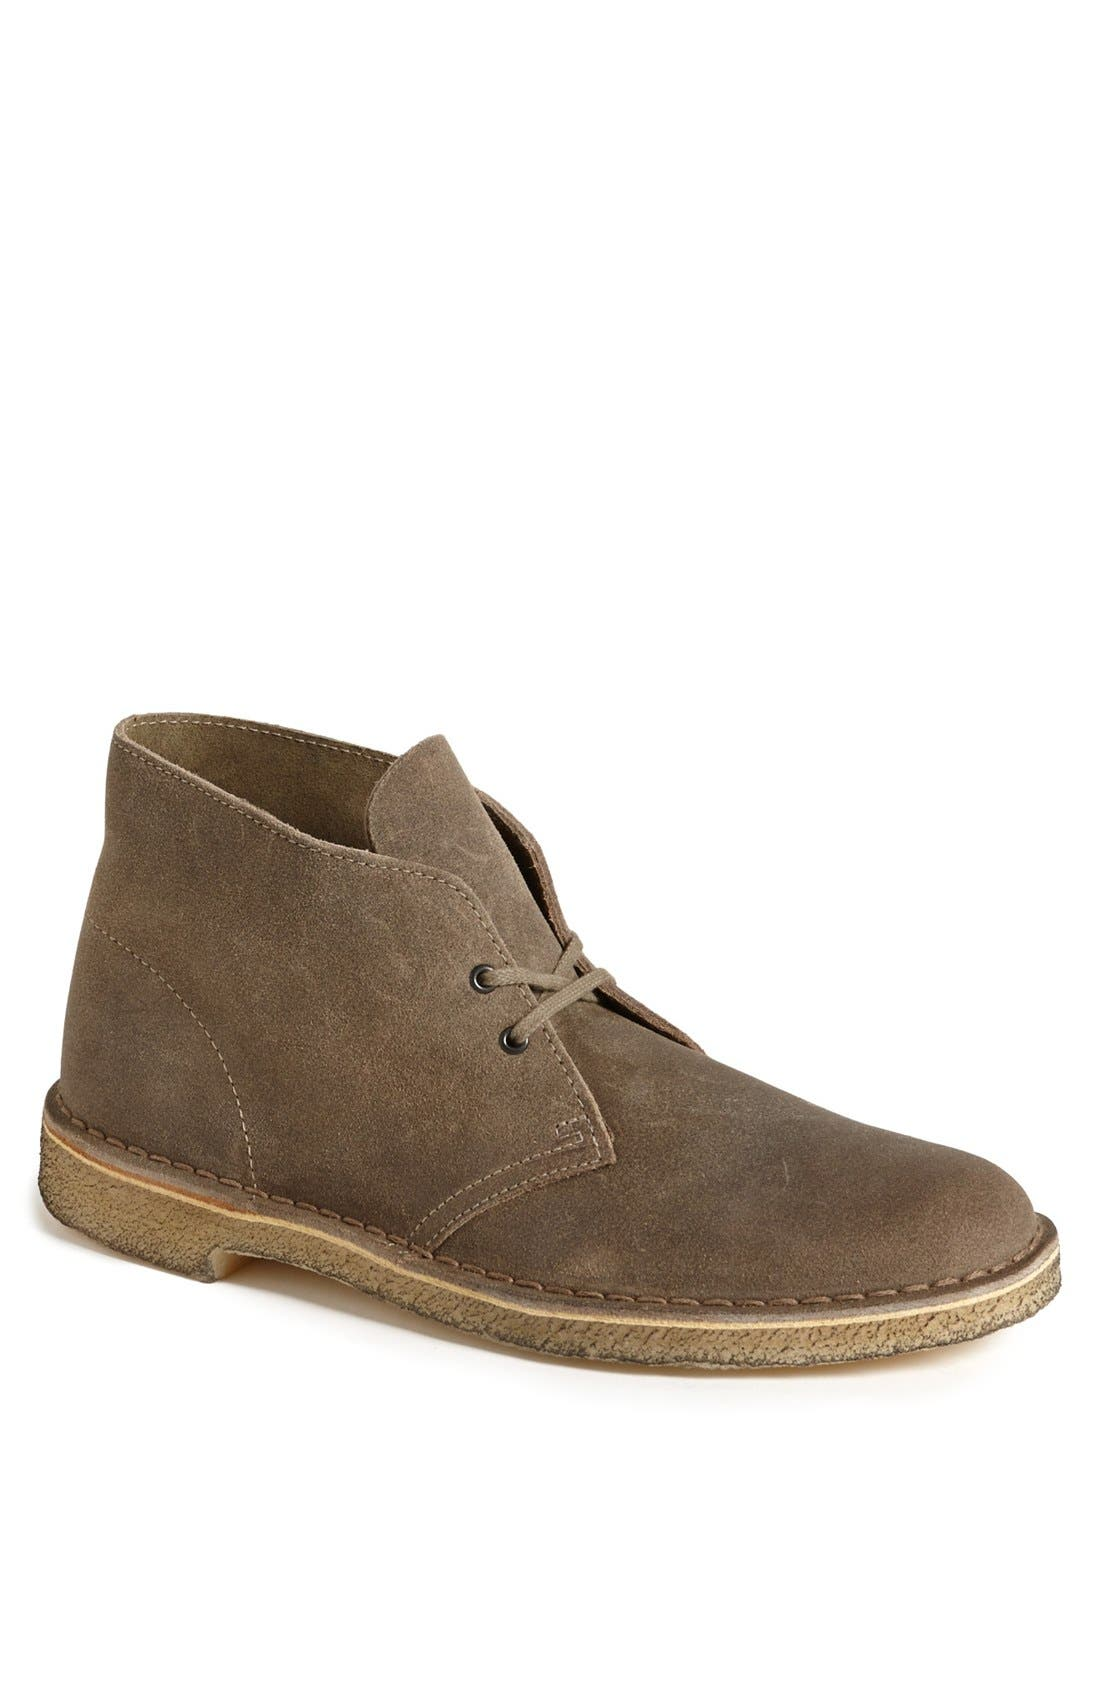 'Desert' Boot,                             Main thumbnail 1, color,                             TAUPE DISTRESSED SUEDE